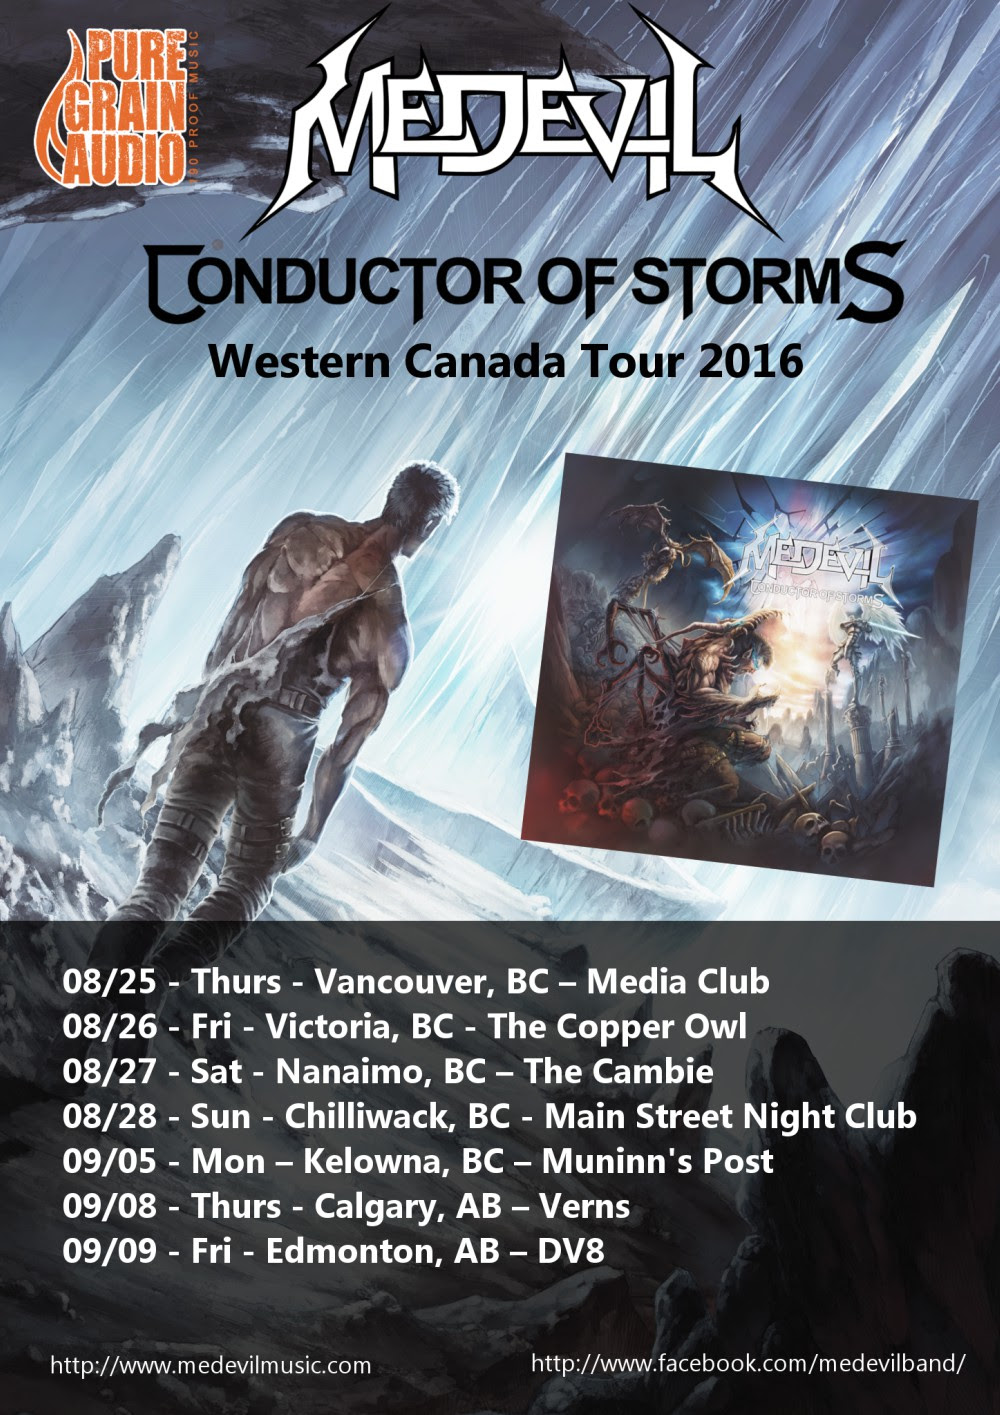 Conductor of Storms,Western Canada Tour